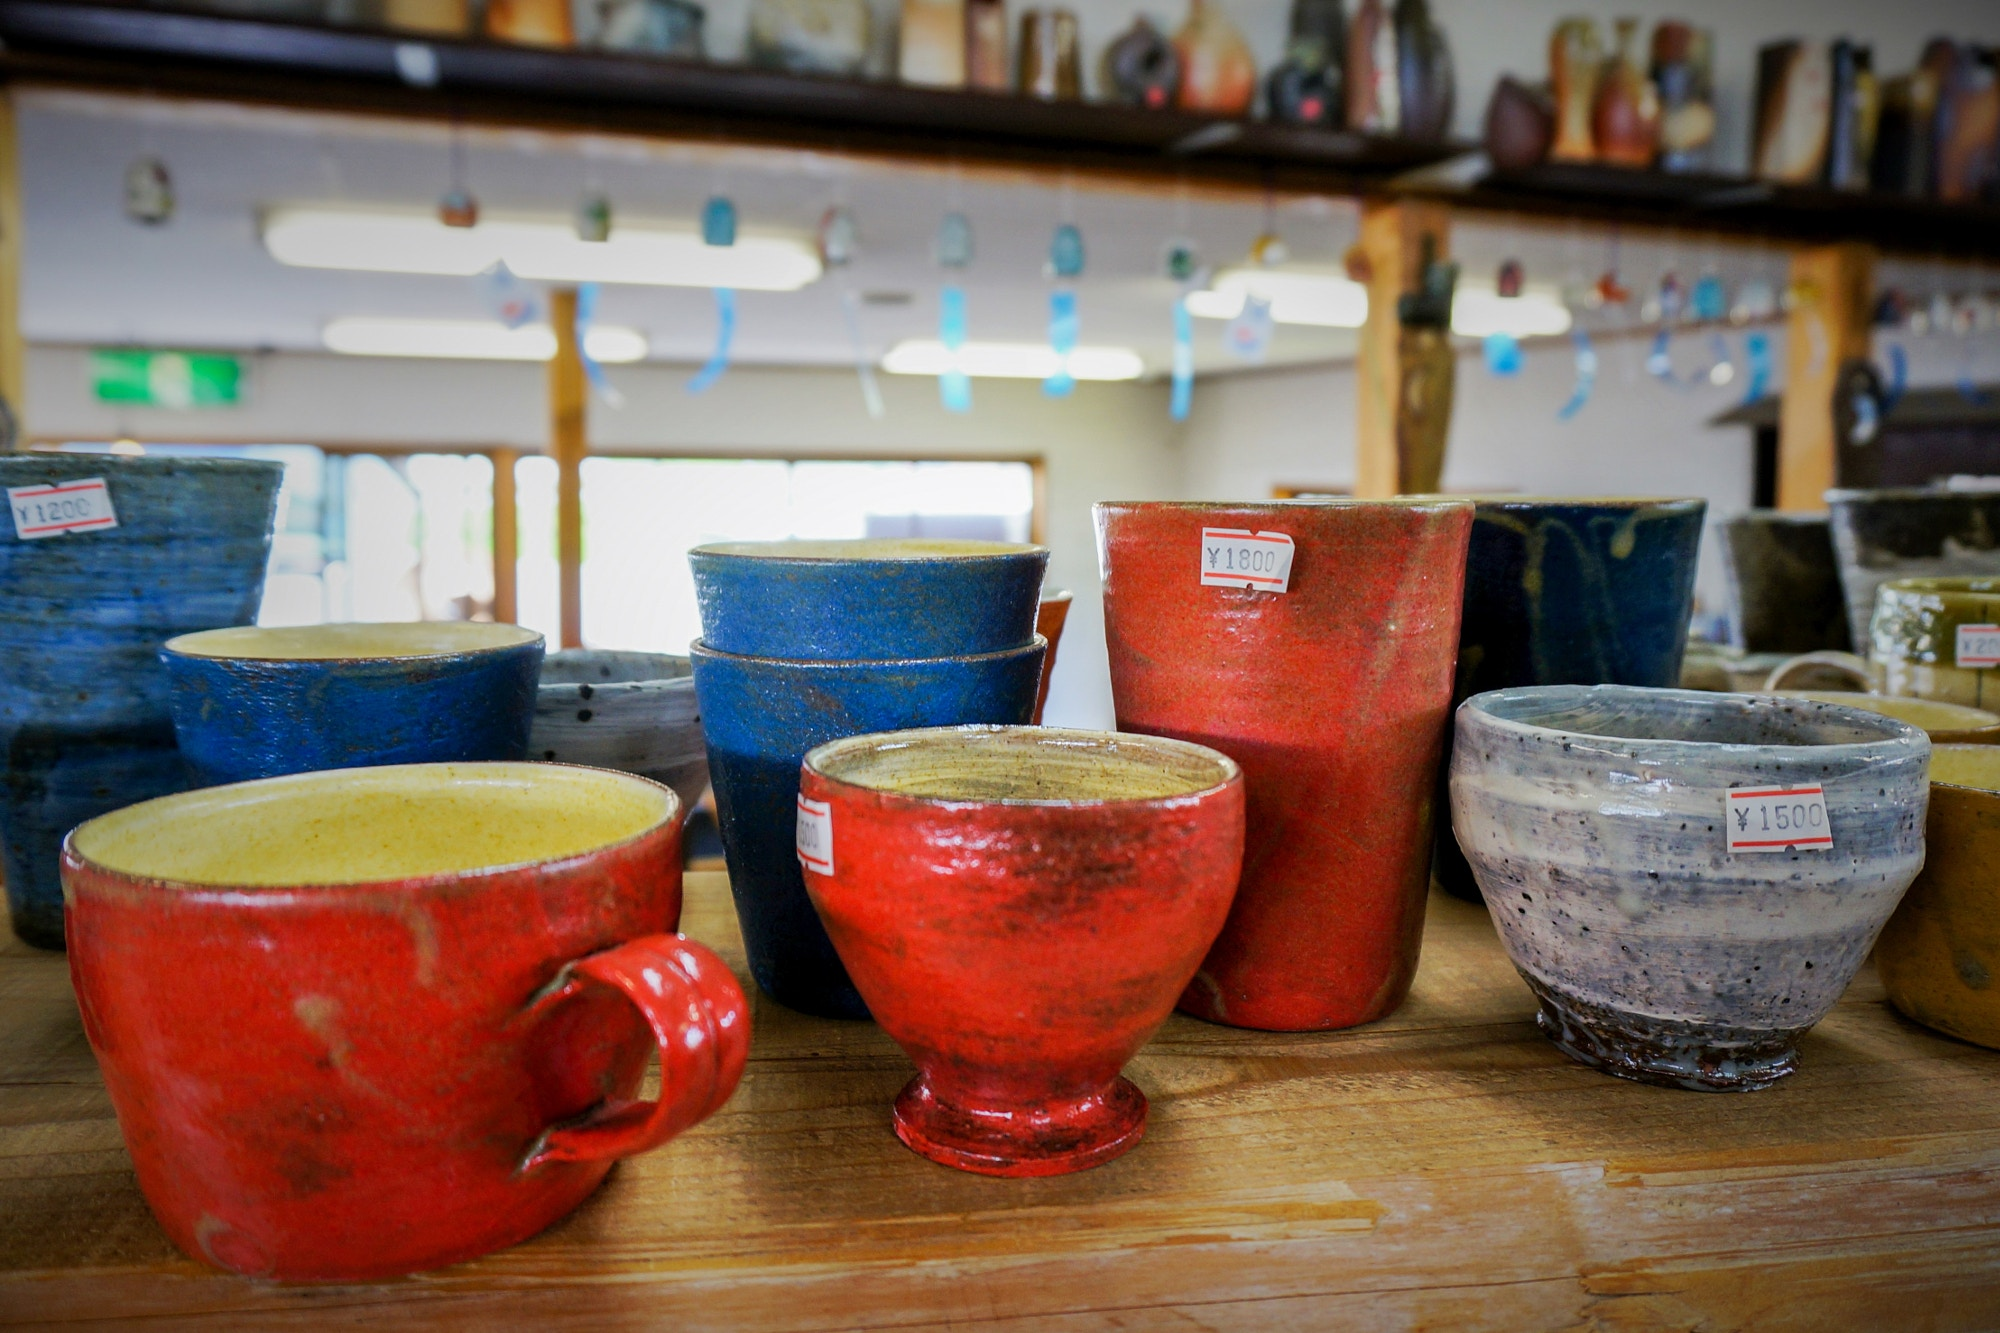 Pottery on sale in the village of Shigaraki